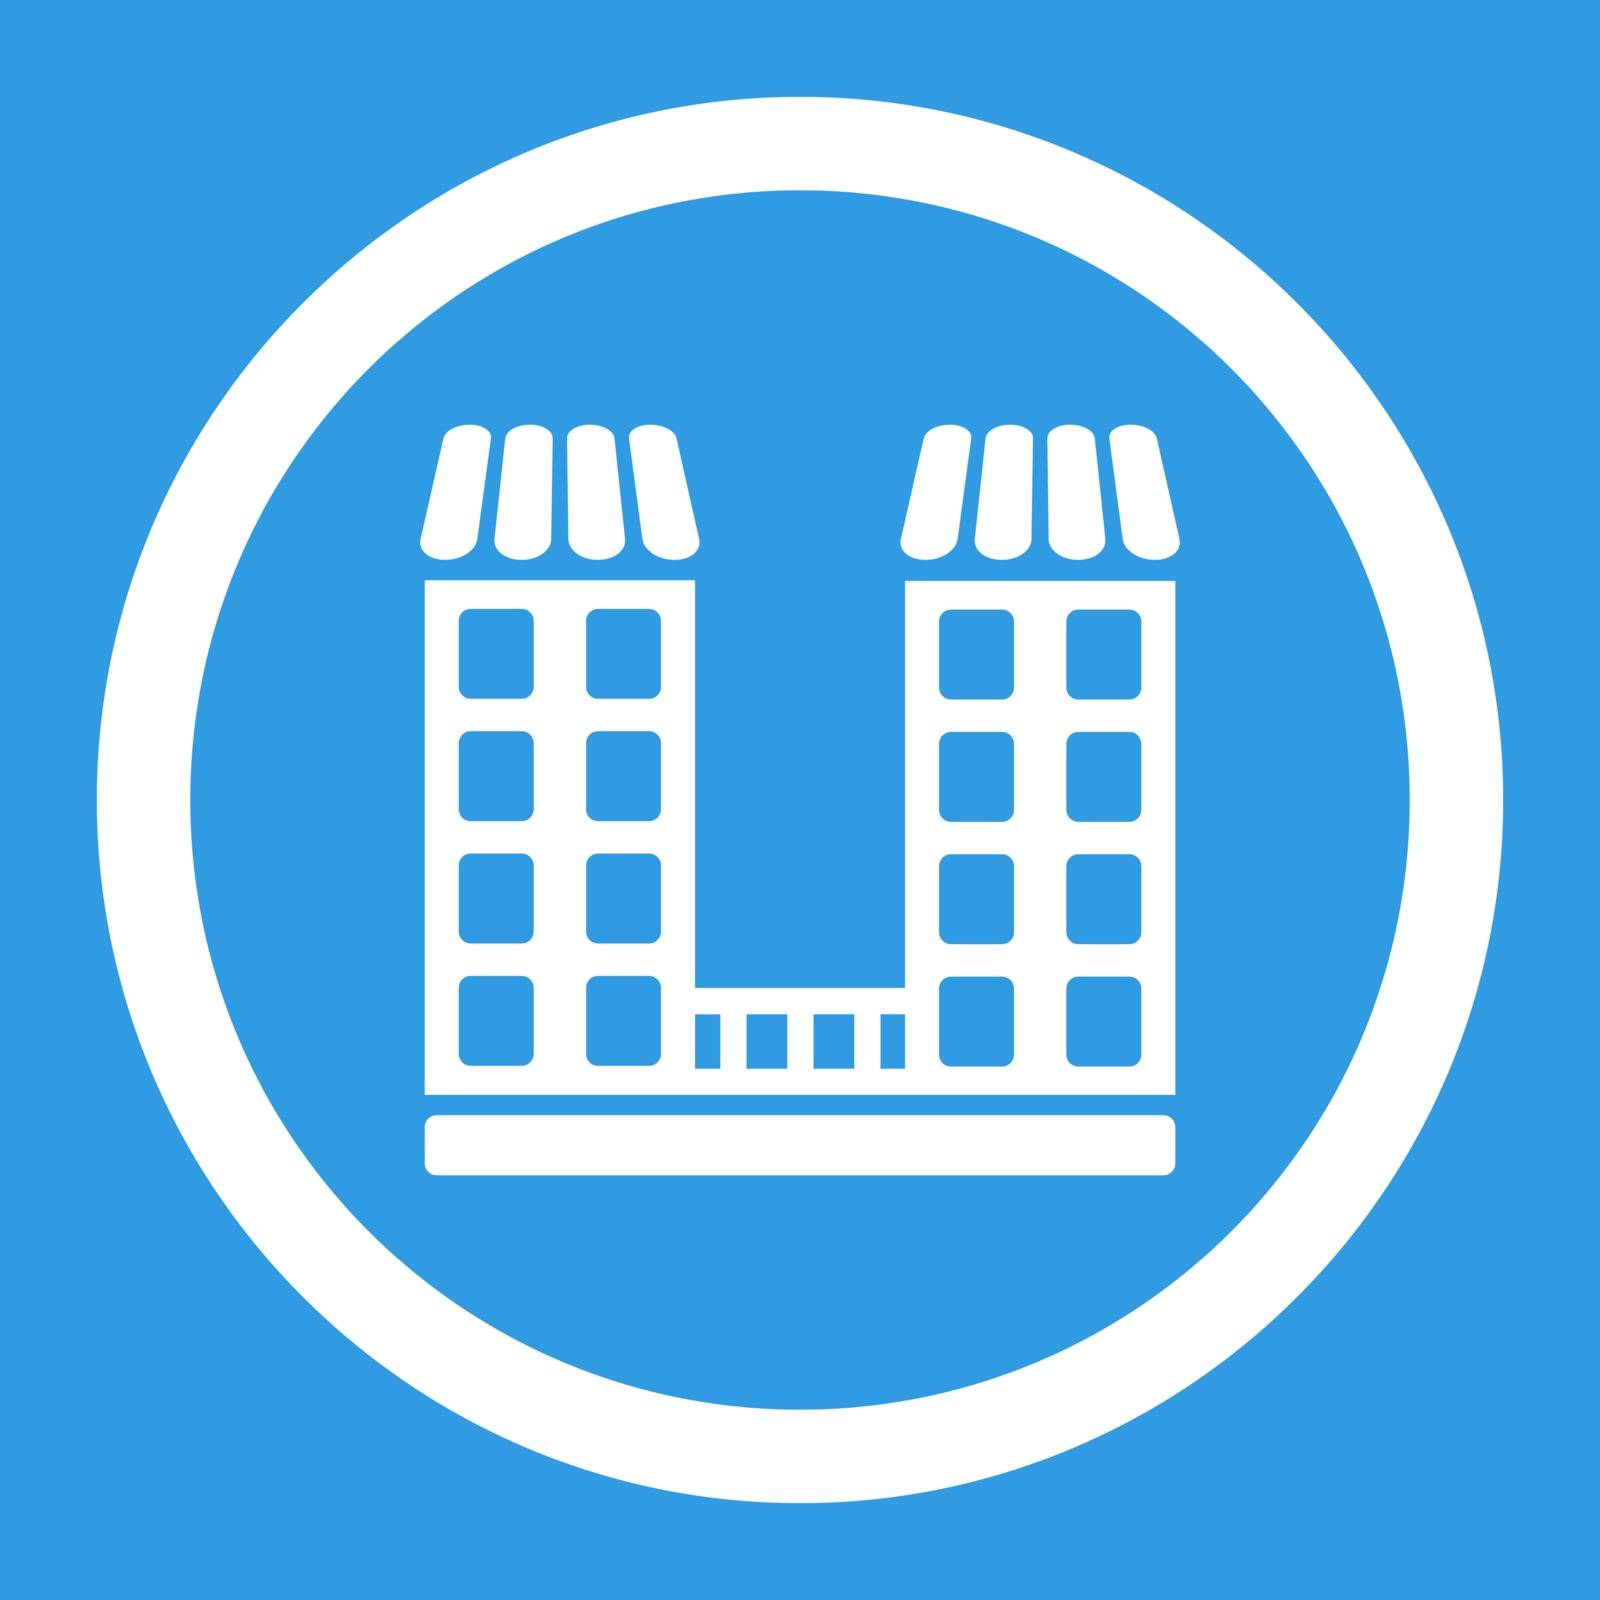 Company vector icon. This flat rounded symbol uses white color and isolated on a blue background.